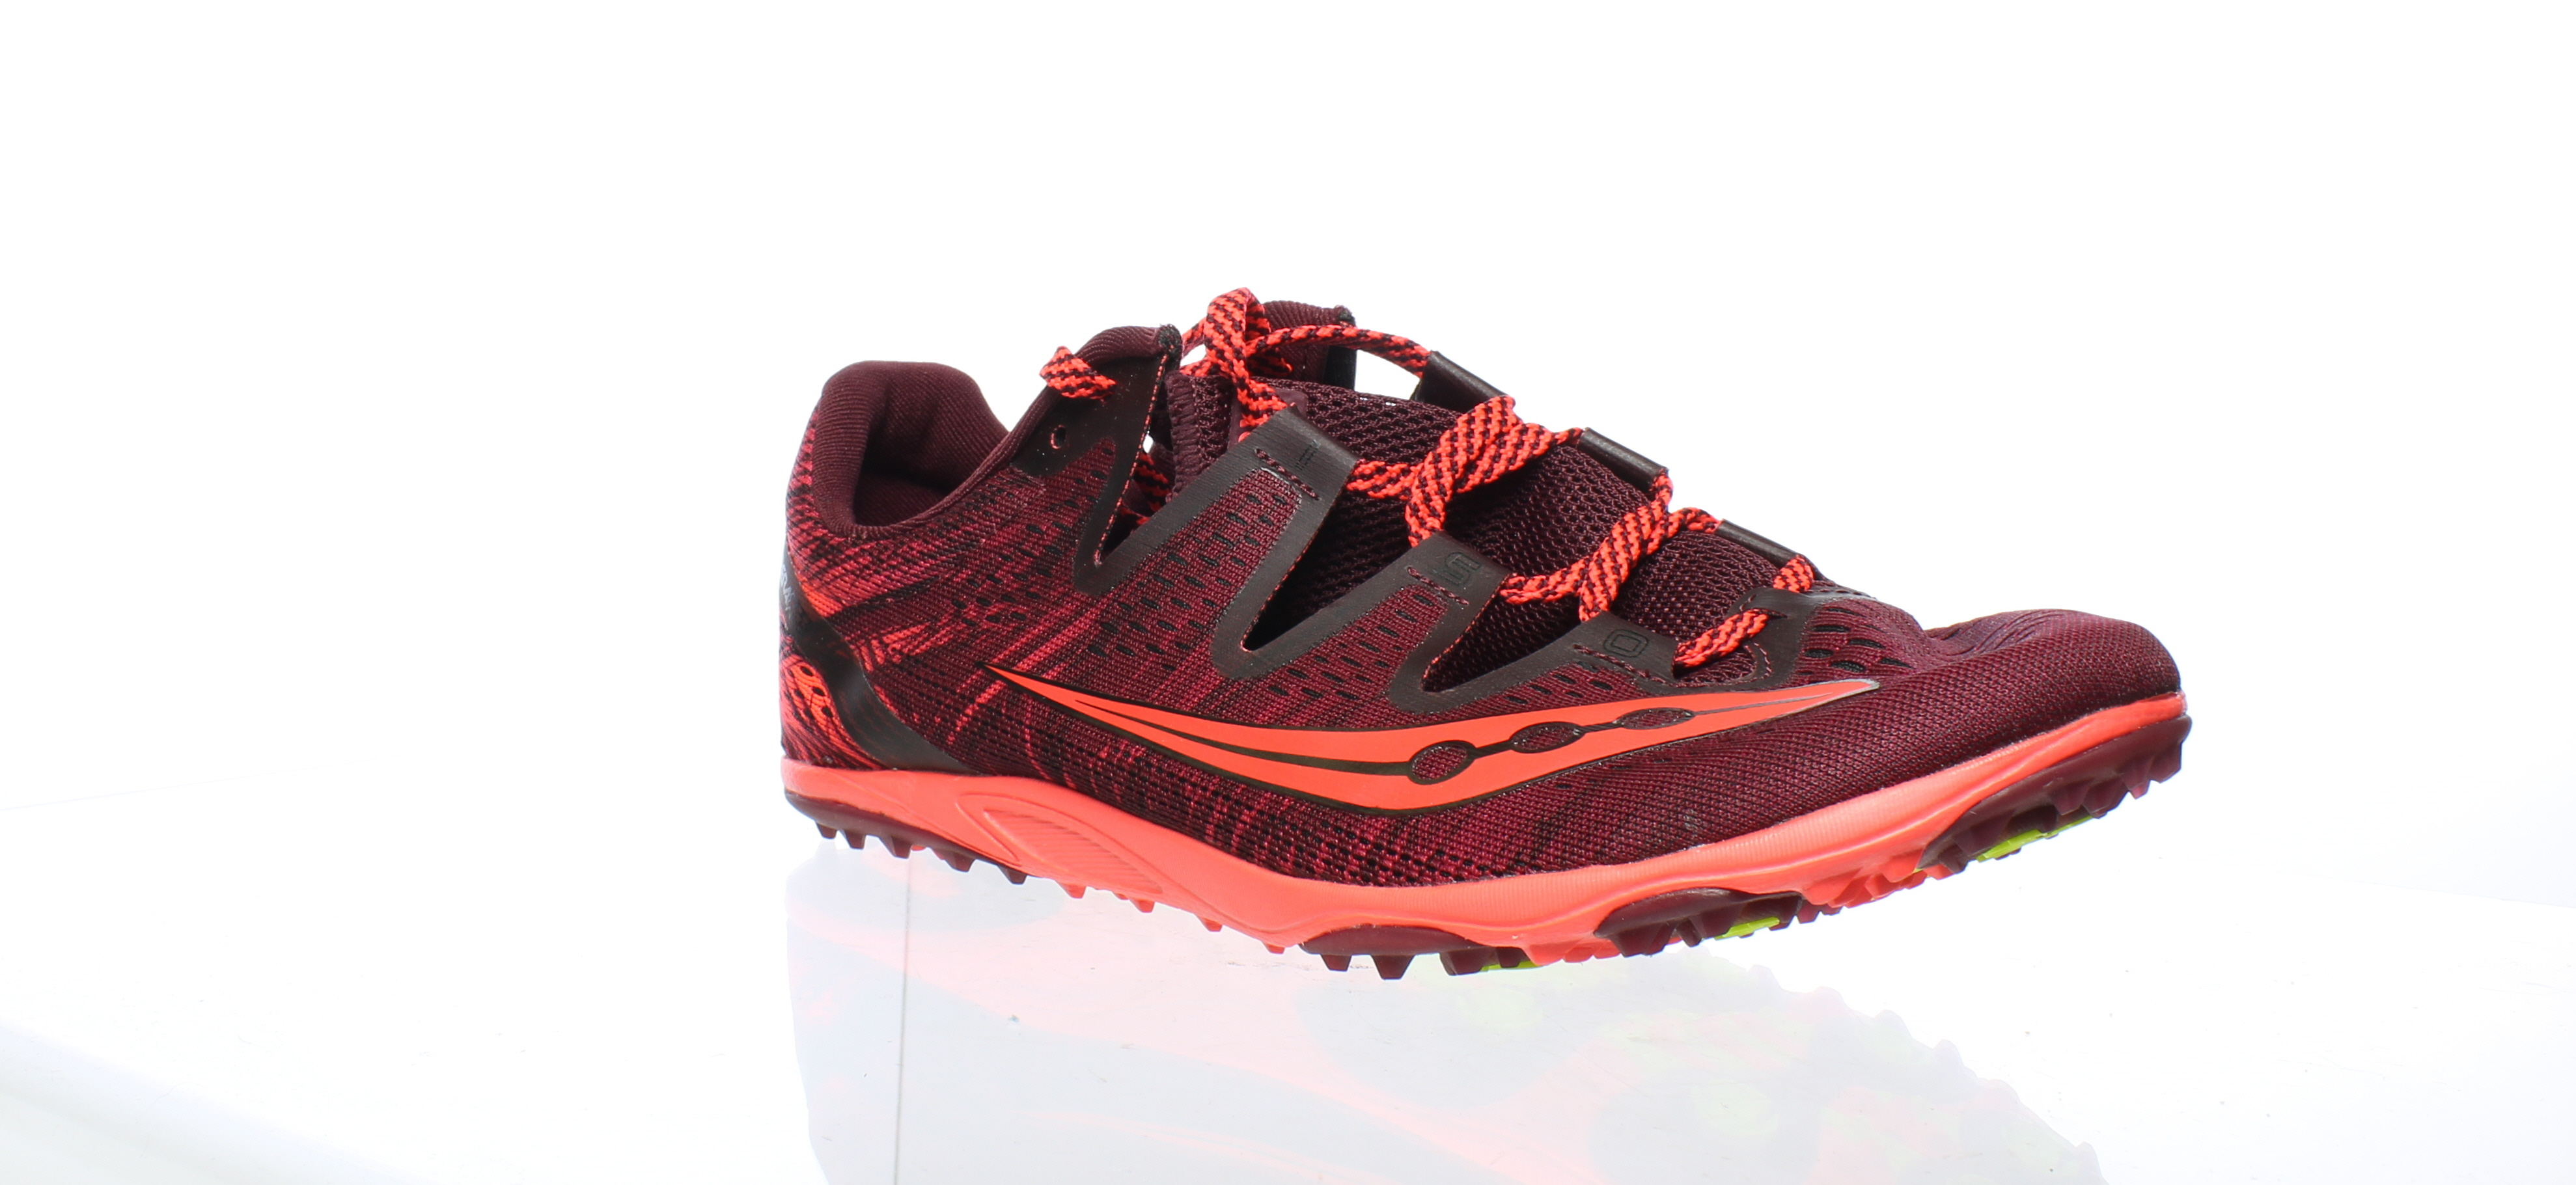 1384aa7d Details about Saucony Womens Carrera Xc 3 Berry/Vizi Red Running Shoes Size  9.5